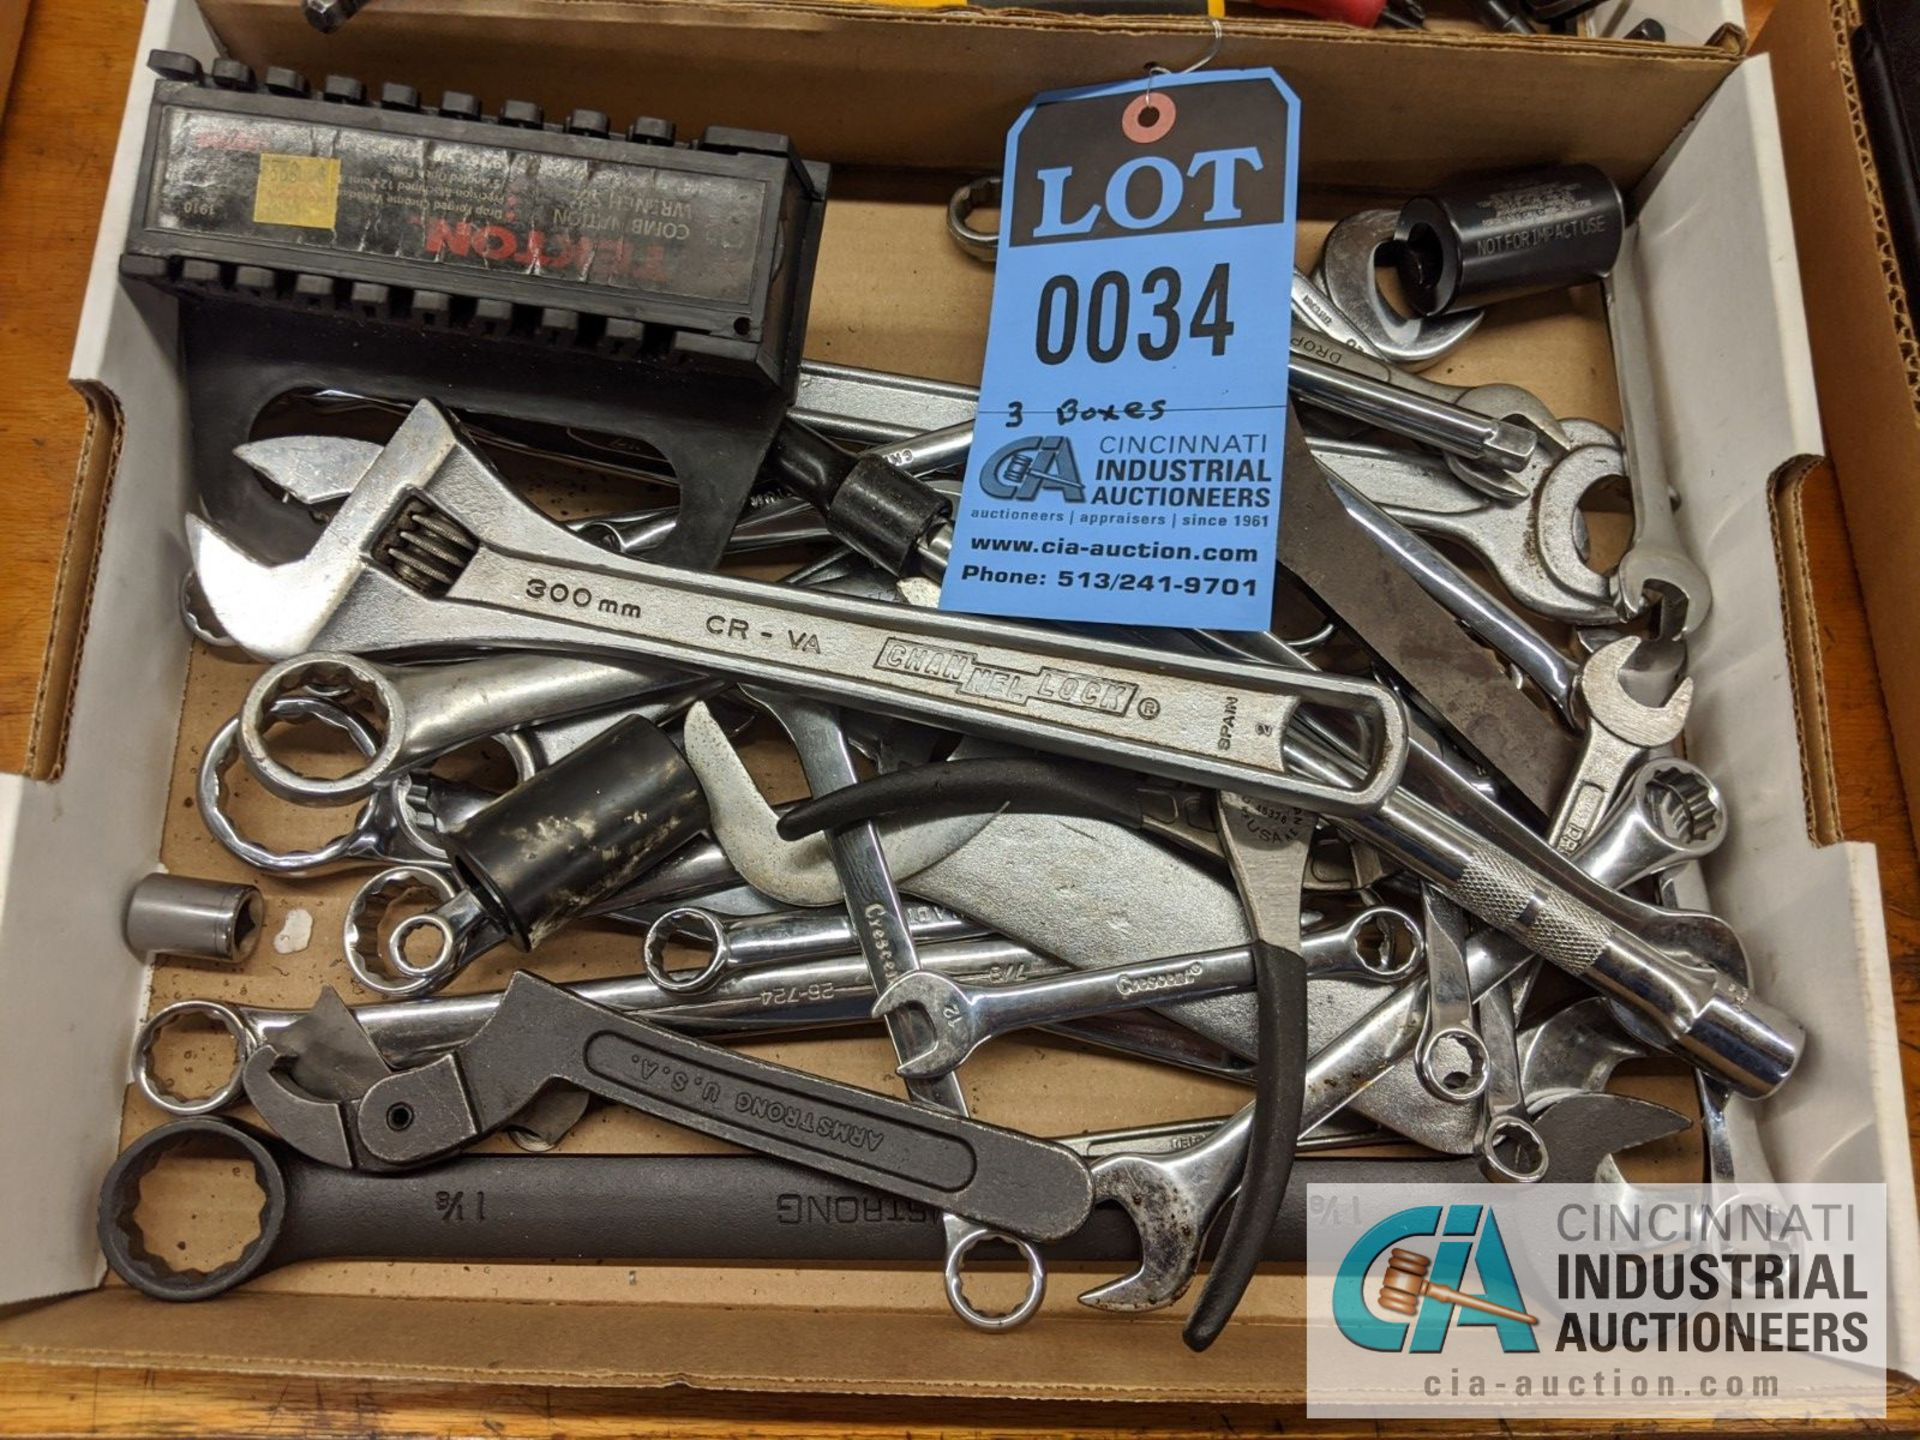 BOXES ASSORTED TOOLS; WRENCHES, SCREW DRIVER AND ASSORTMENT BOX - Image 2 of 4